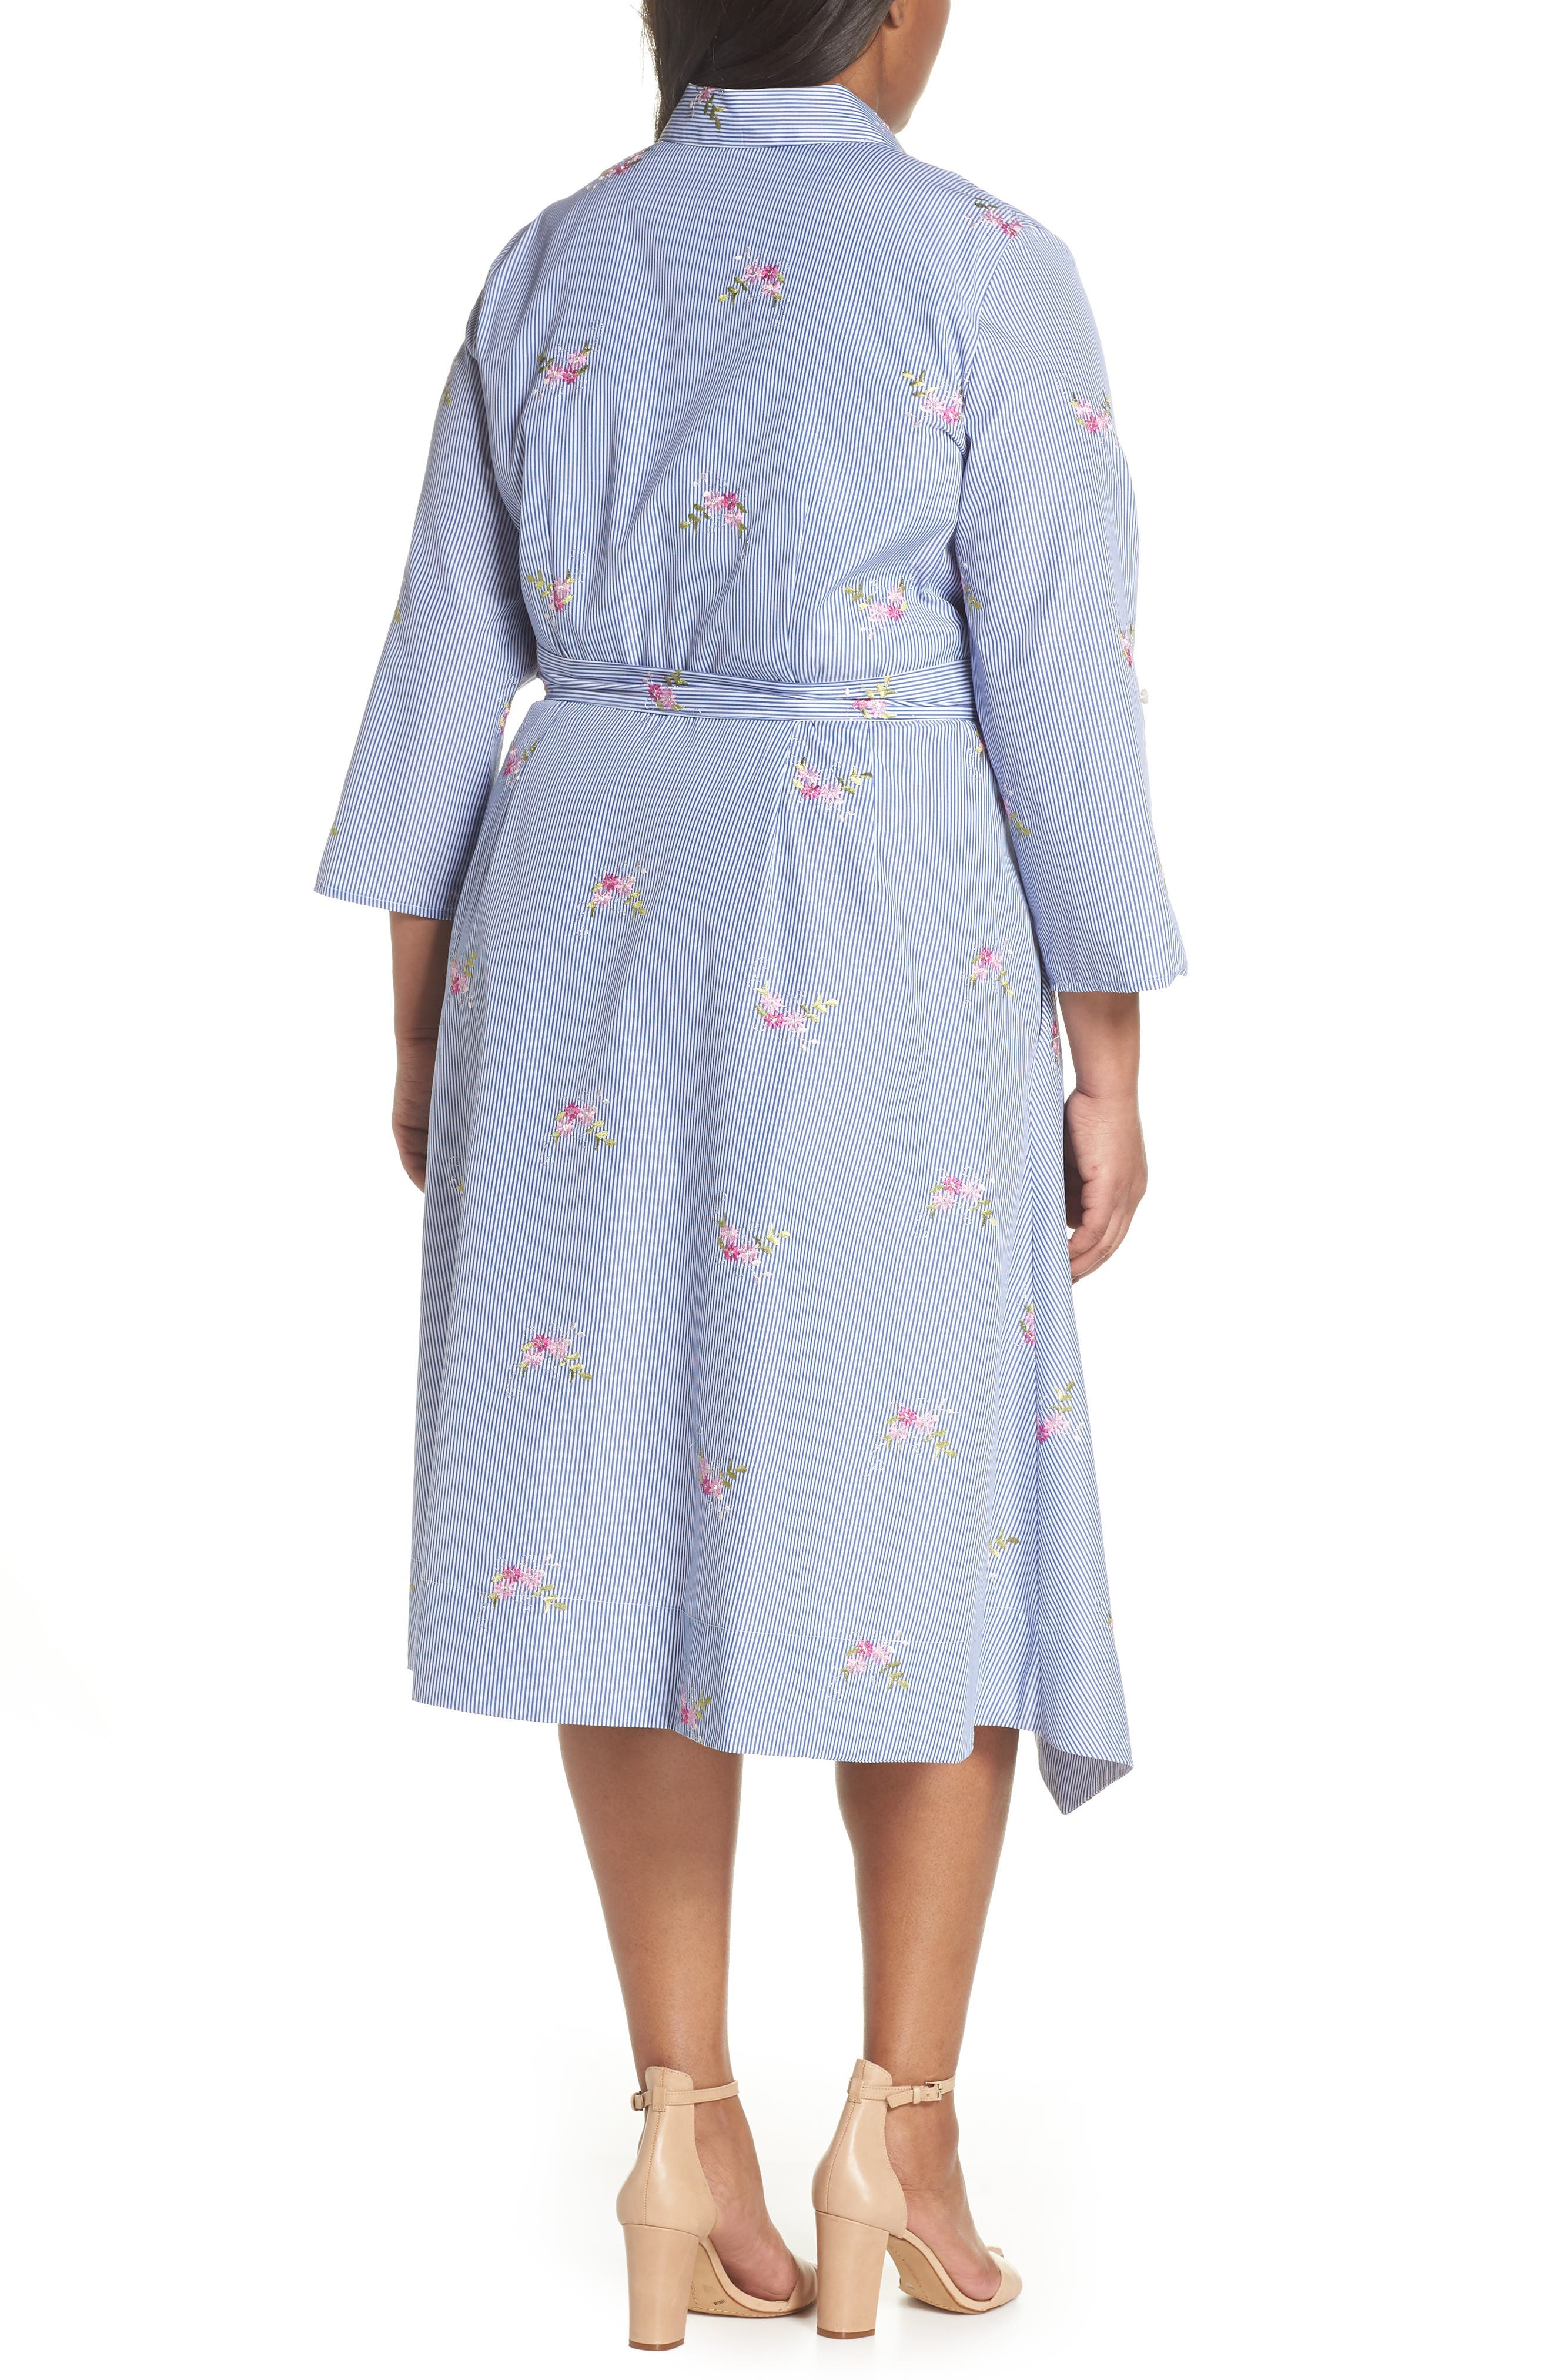 Embroidered Stripe Shirtdress,                             Alternate thumbnail 2, color,                             Navy/ White/ Pink